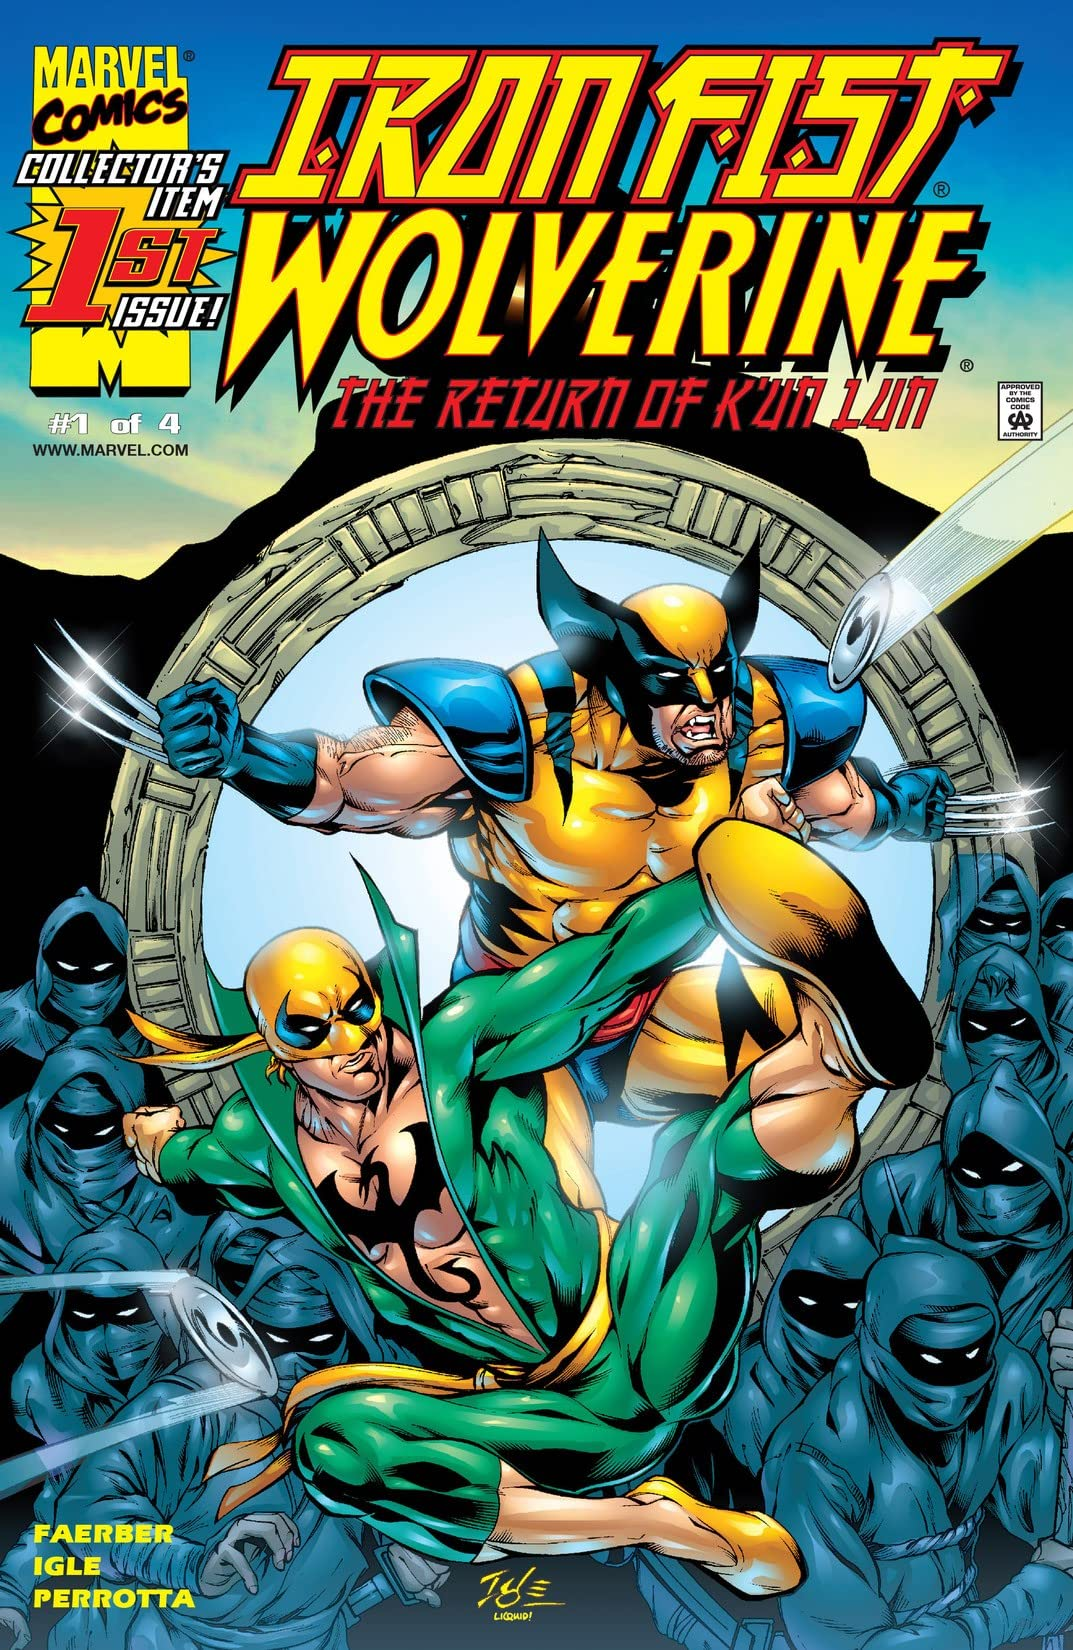 Iron Fist/Wolverine (2000-2001) #1 (of 4)